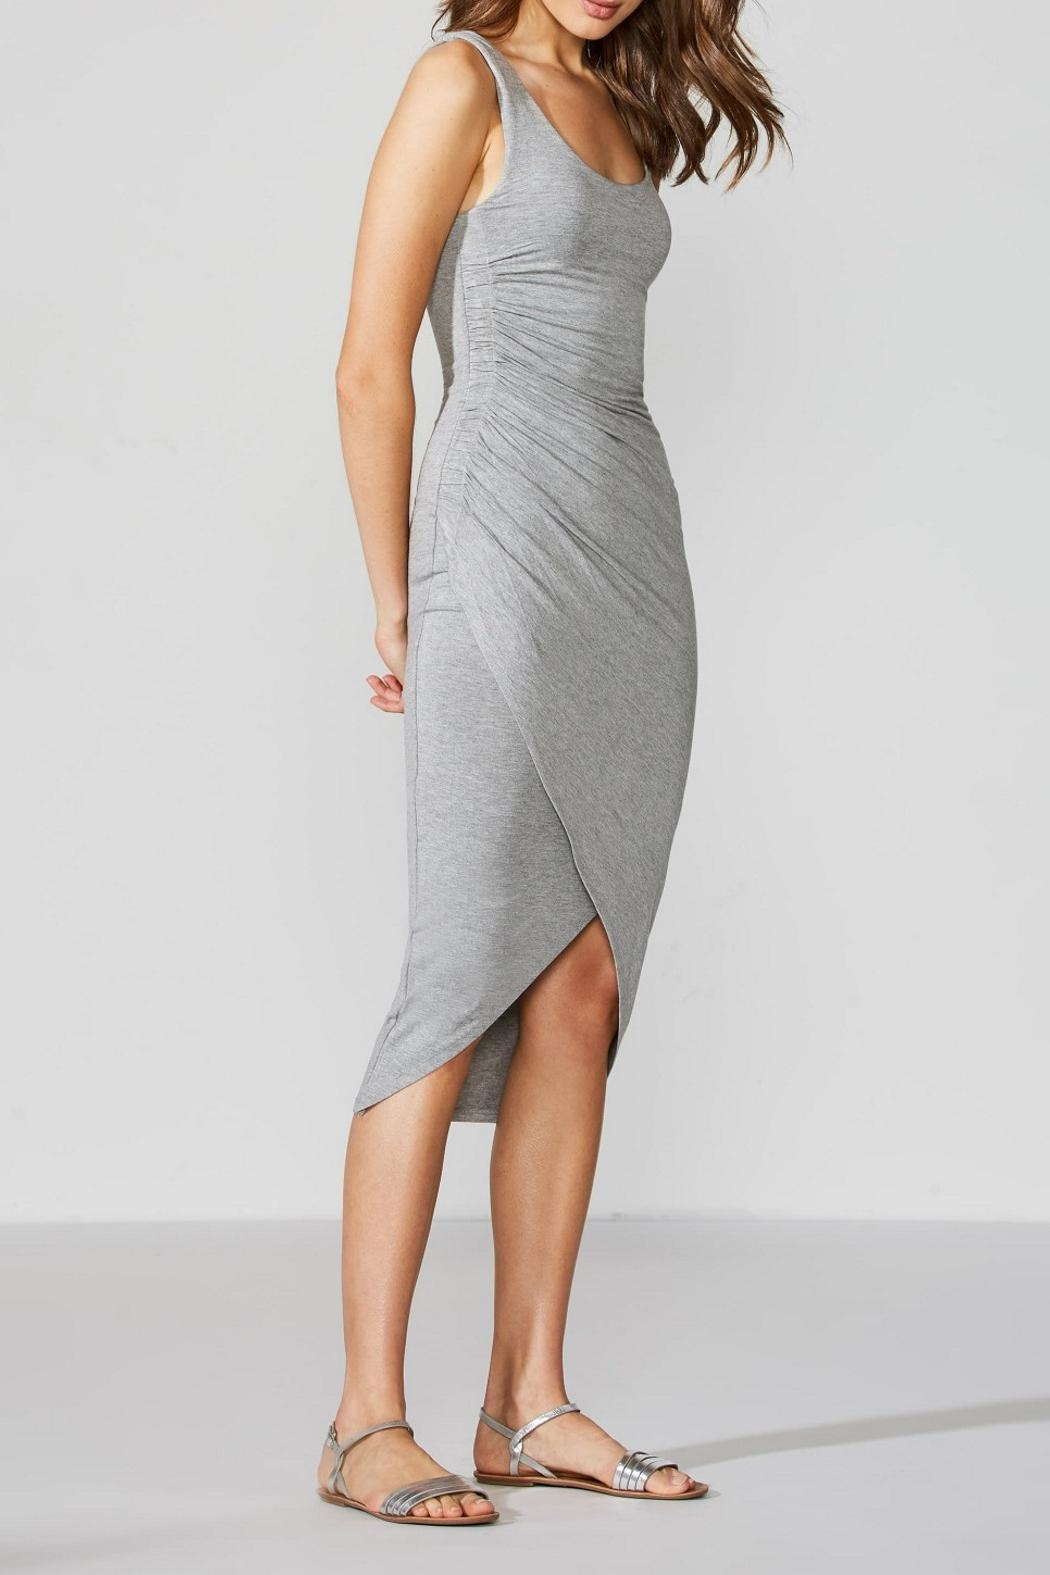 Bailey 44 Dishdasha Dress - Side Cropped Image